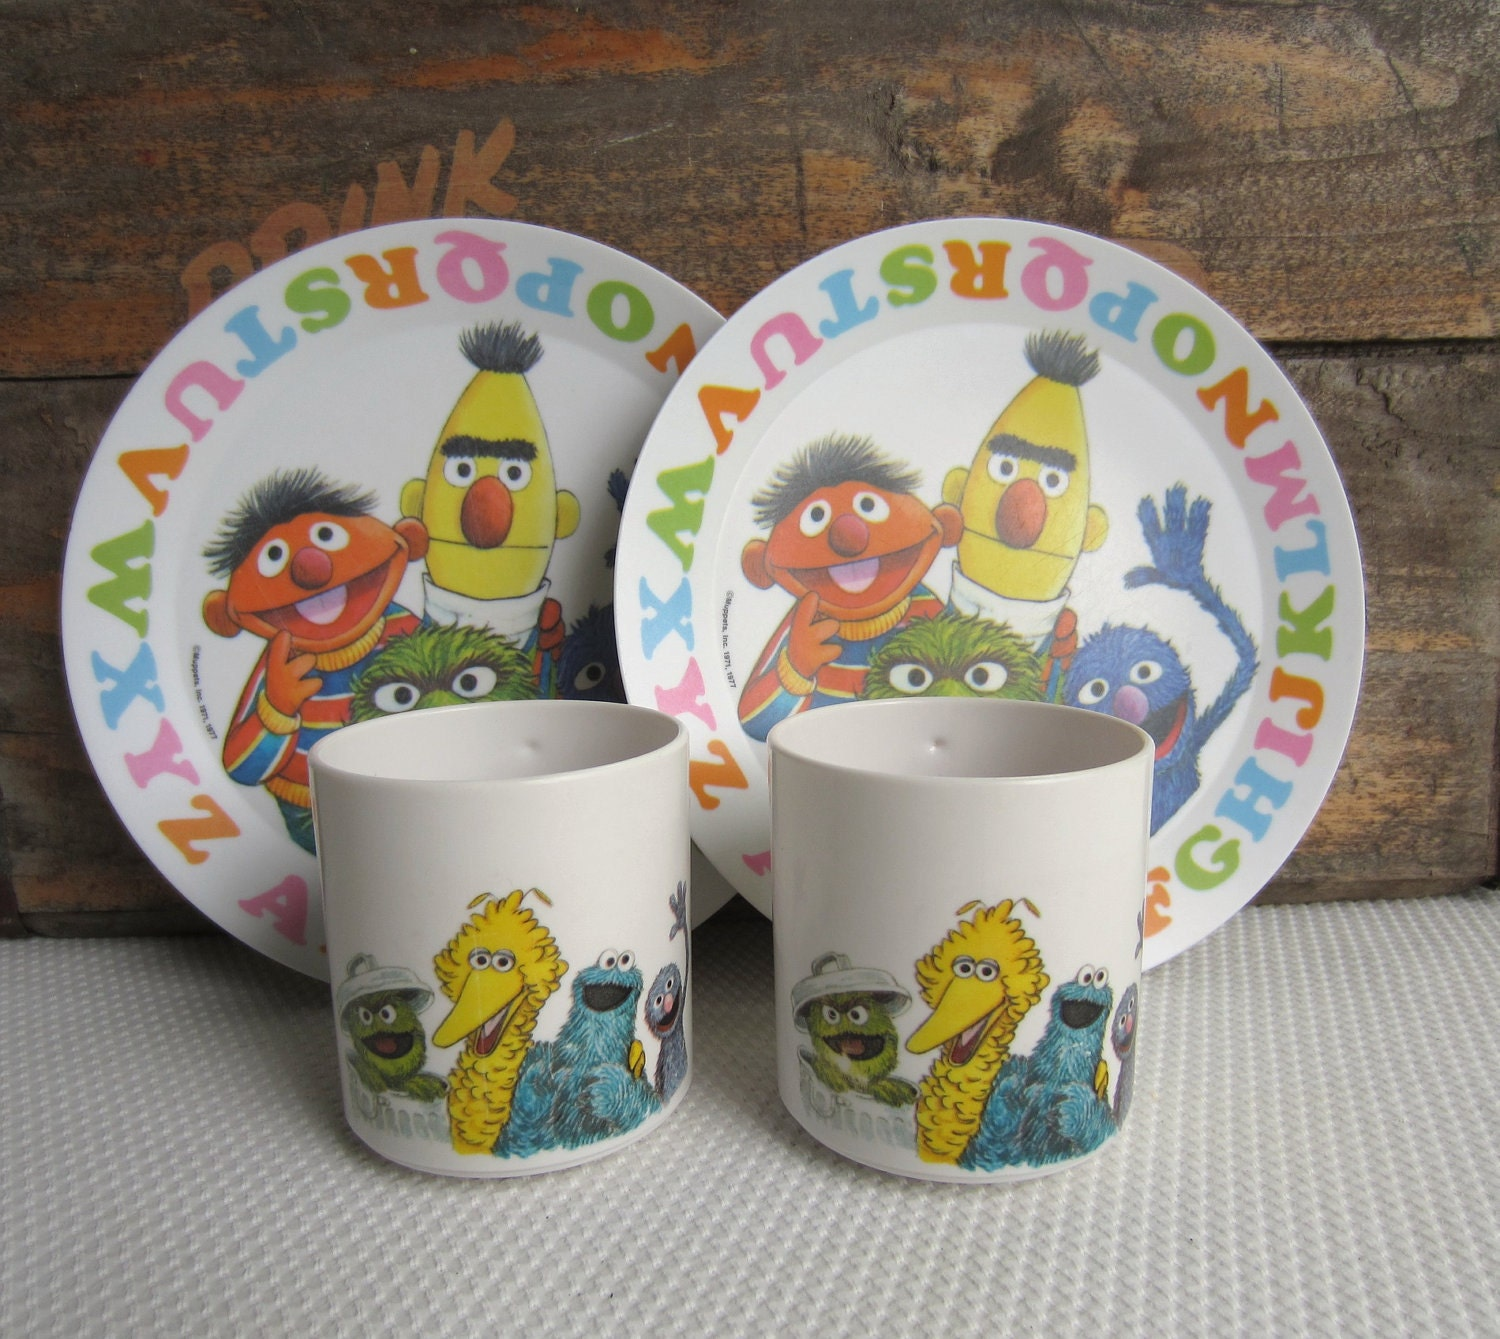 Top 50 Muppets Loc 80: Vintage 1977 Sesame Street Cups And Plates ABC Muppets Inc